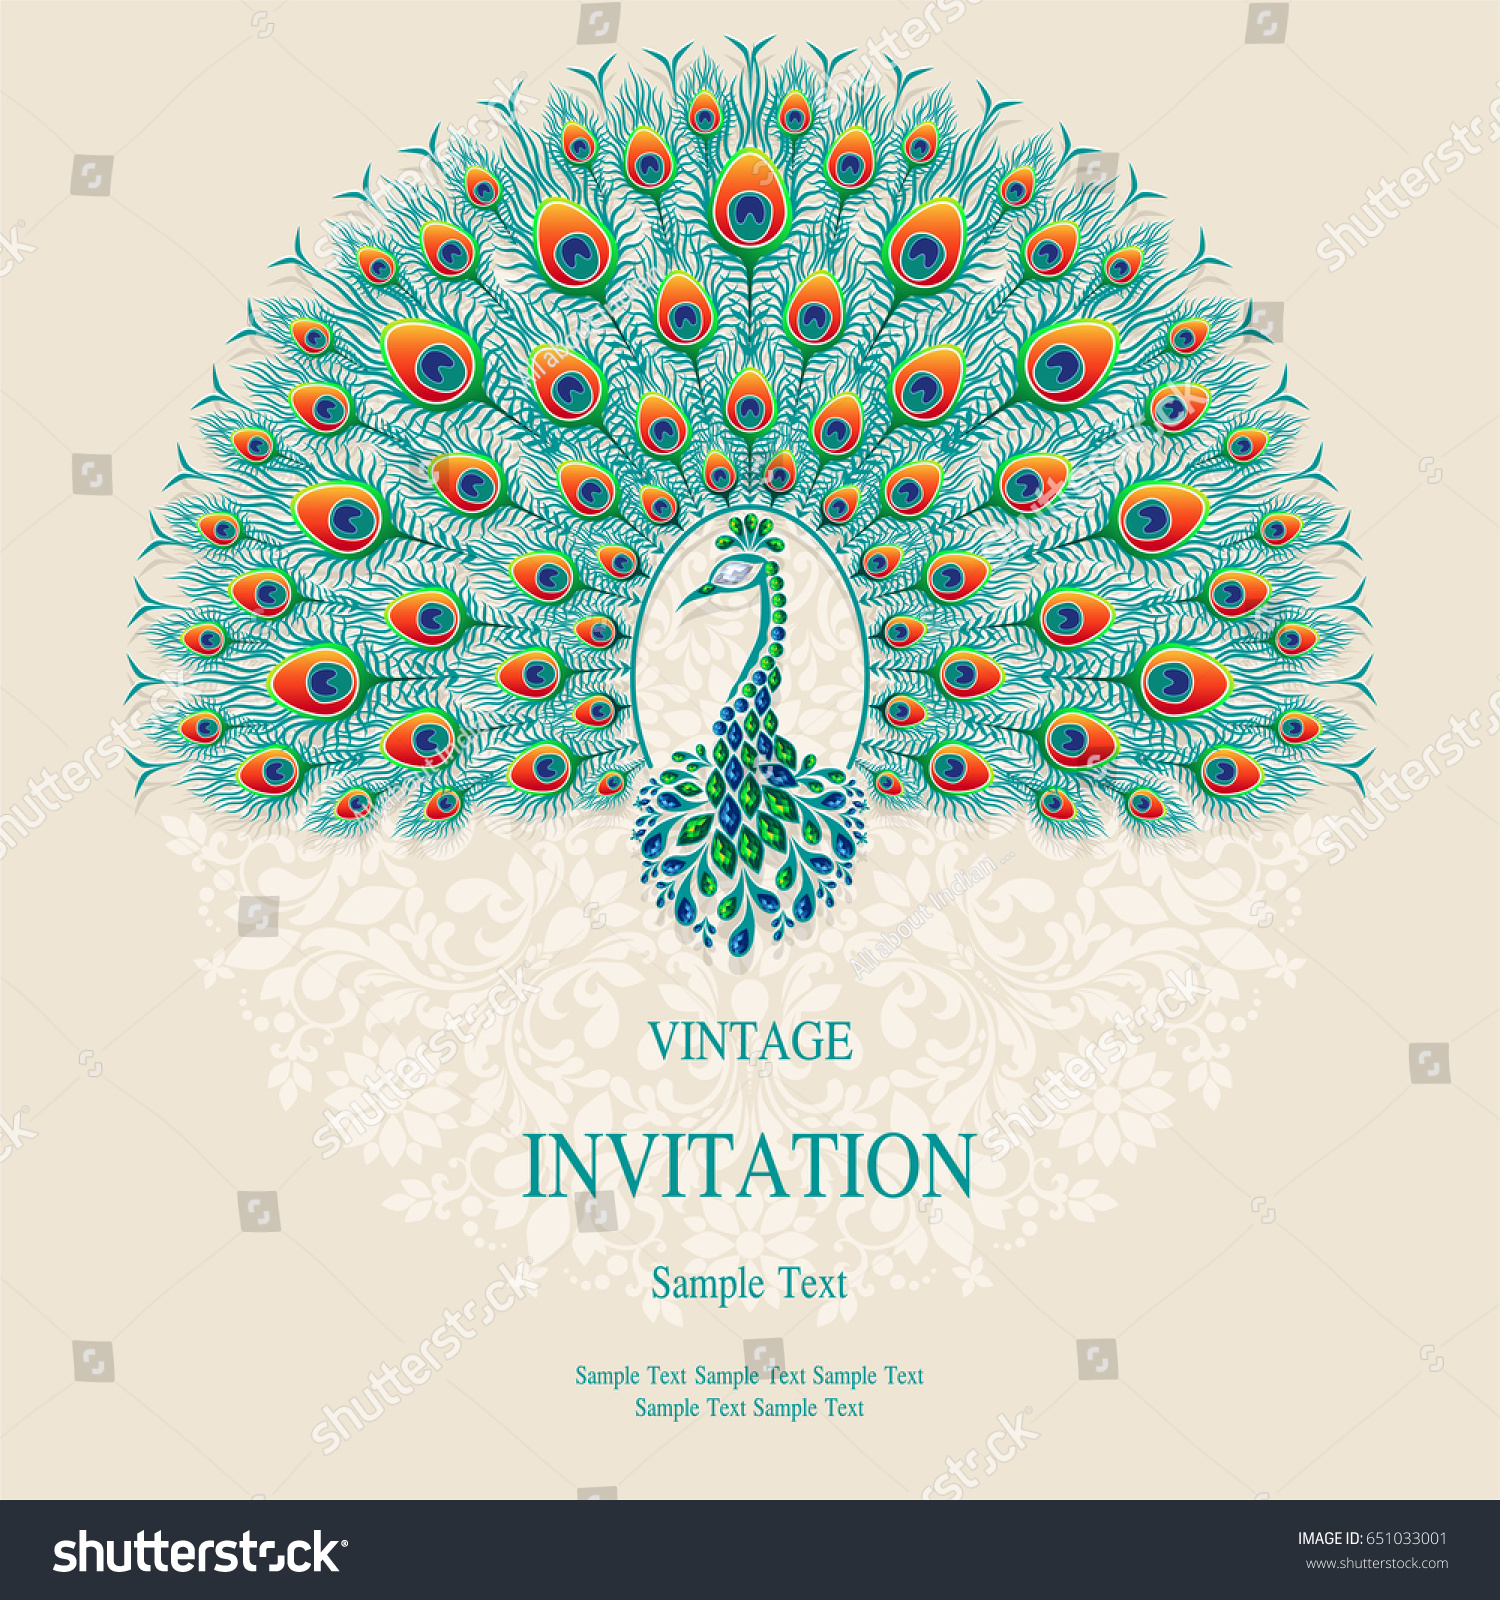 invitation card templates peacock patterned crystals stock vector